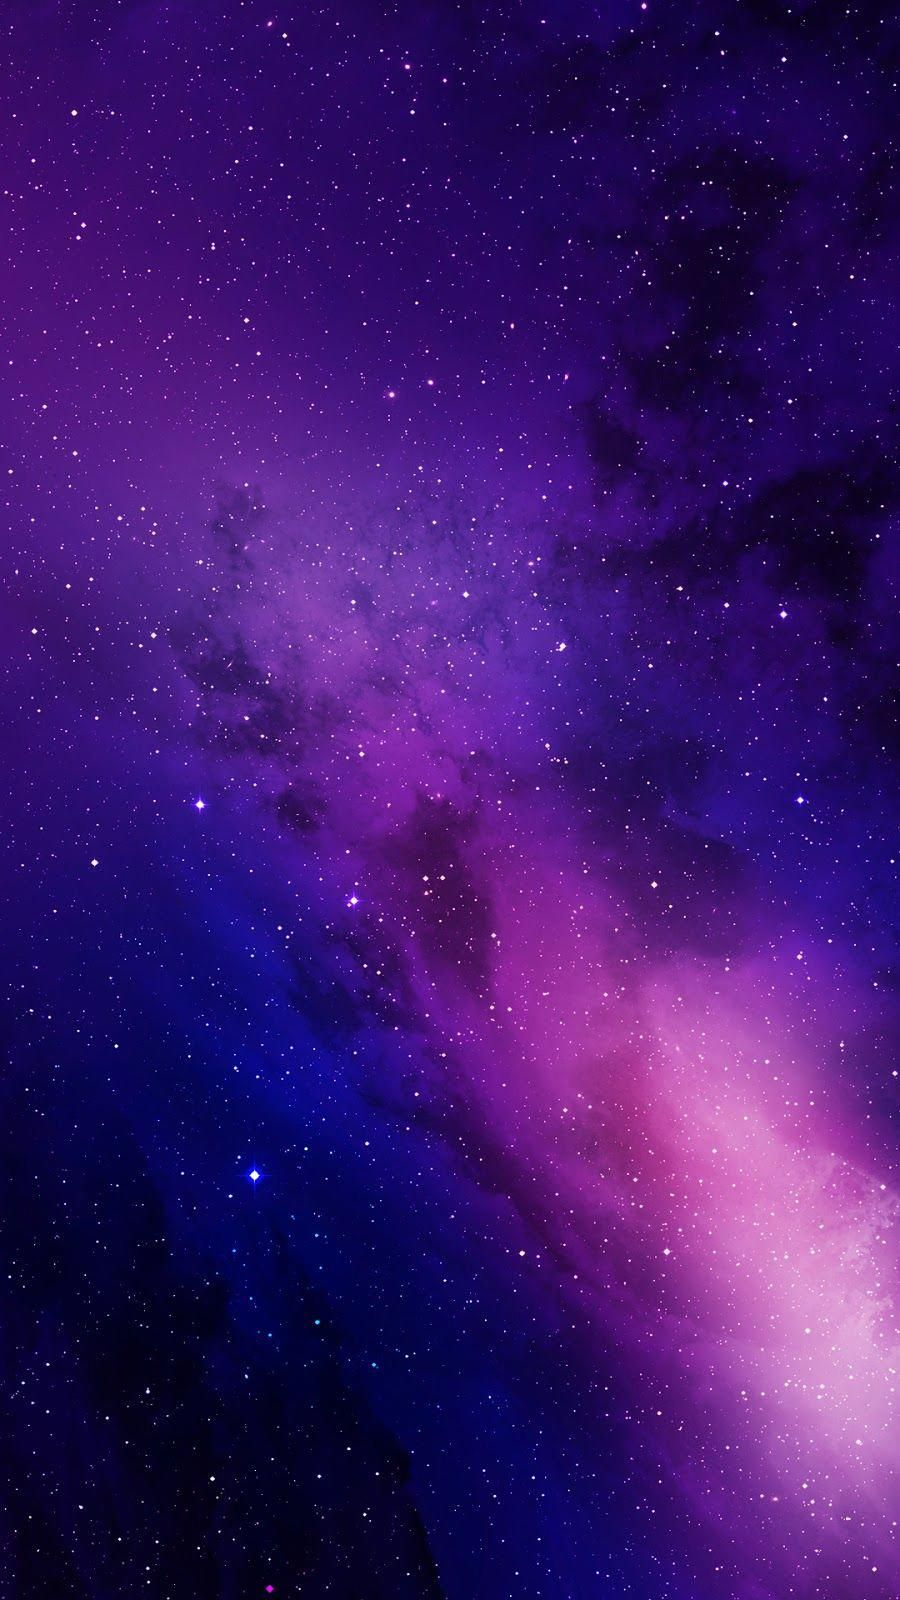 Colorful Galaxy Wallpaper Iphone Android Background Followme Galaxy Wallpaper Iphone Galaxy Phone Wallpaper Purple Galaxy Wallpaper